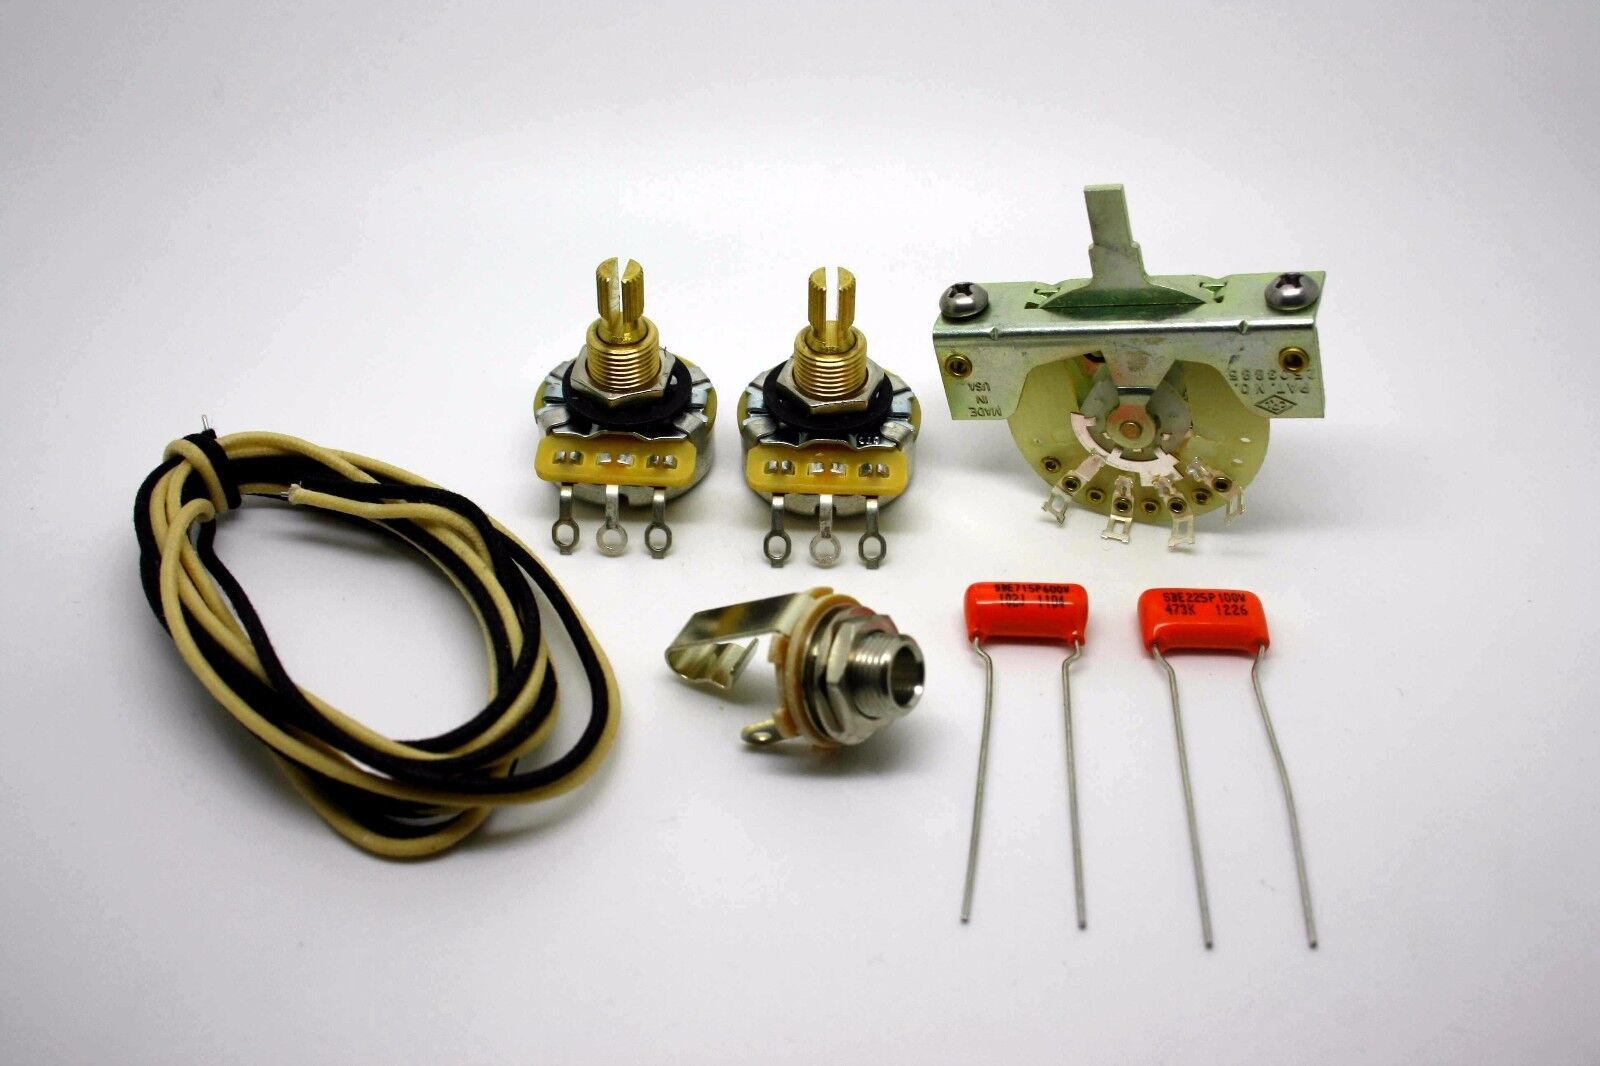 FENDER TELECASTER EXTRA DELUXE & VINTAGE WIRING KIT 0.047uf & DELUXE 0.001uF 94acd5